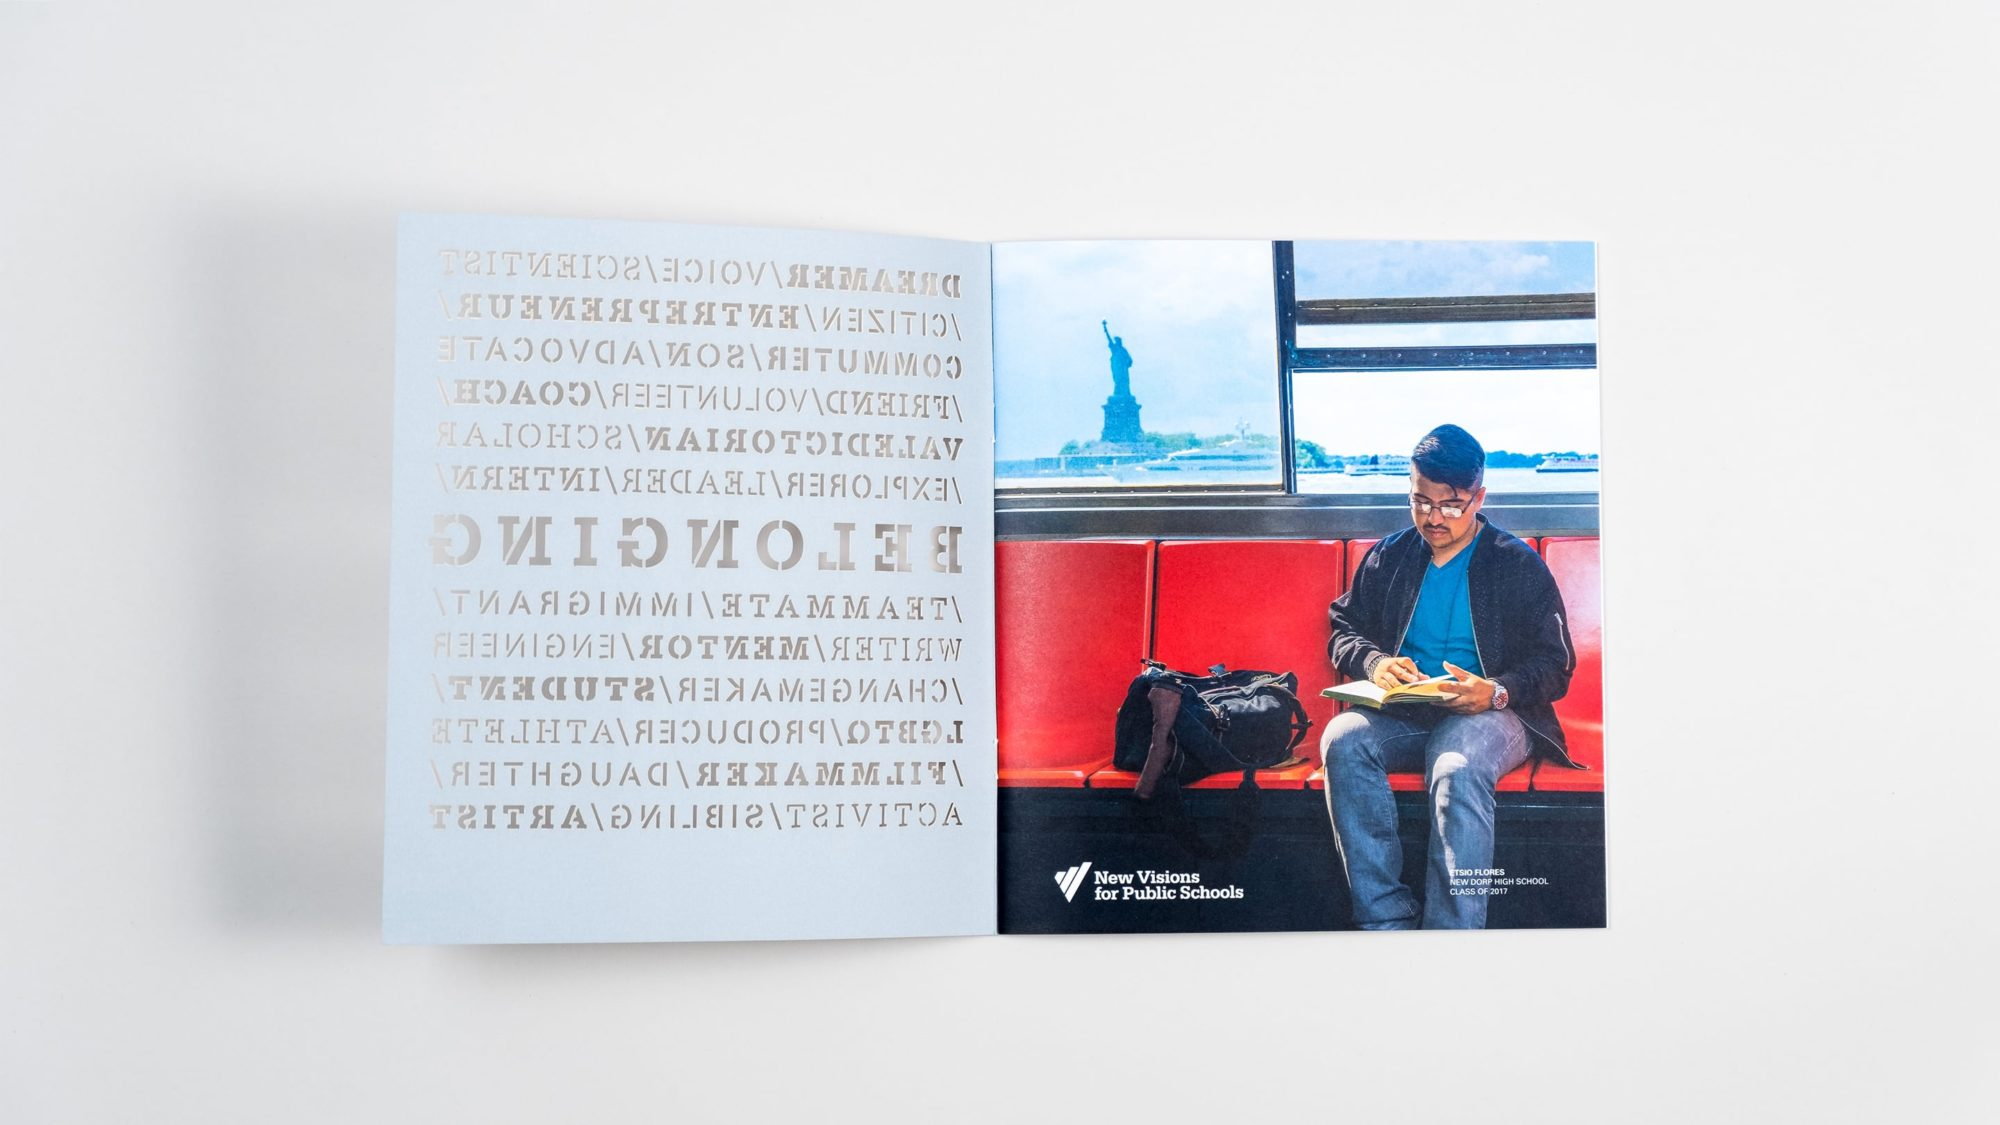 Inside front cover and opening page of annual report revealing photograph of New Visions student reading a book on the subway